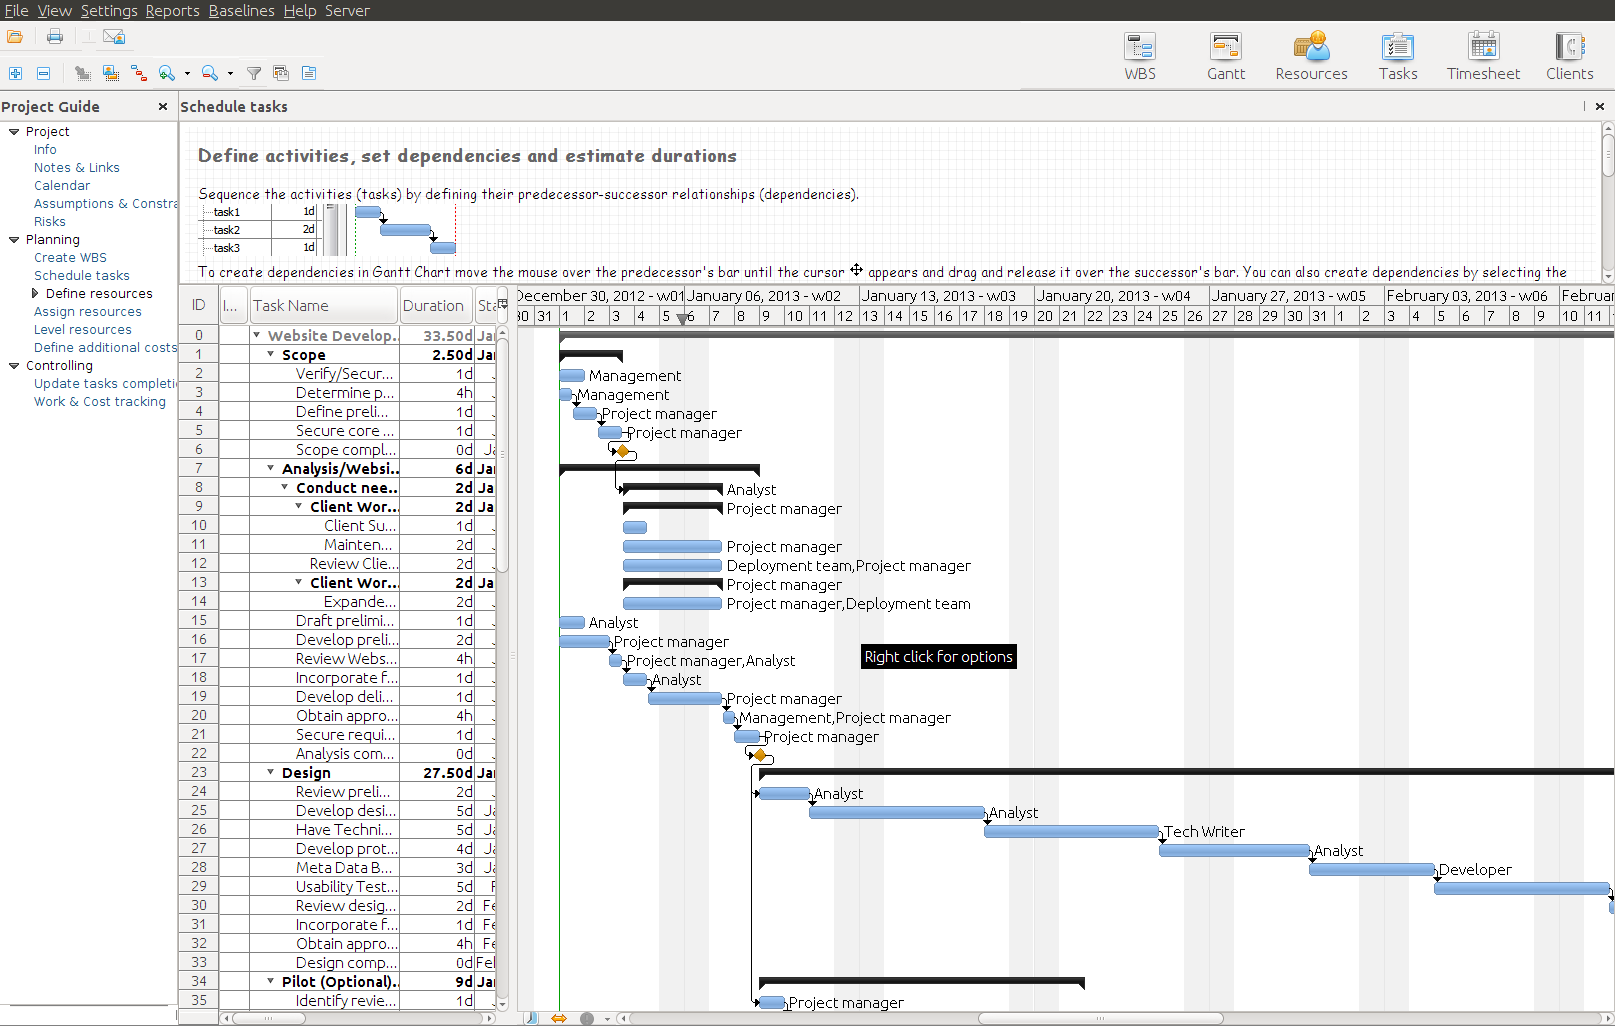 RationalPlan Project Viewer for Linux Freeware